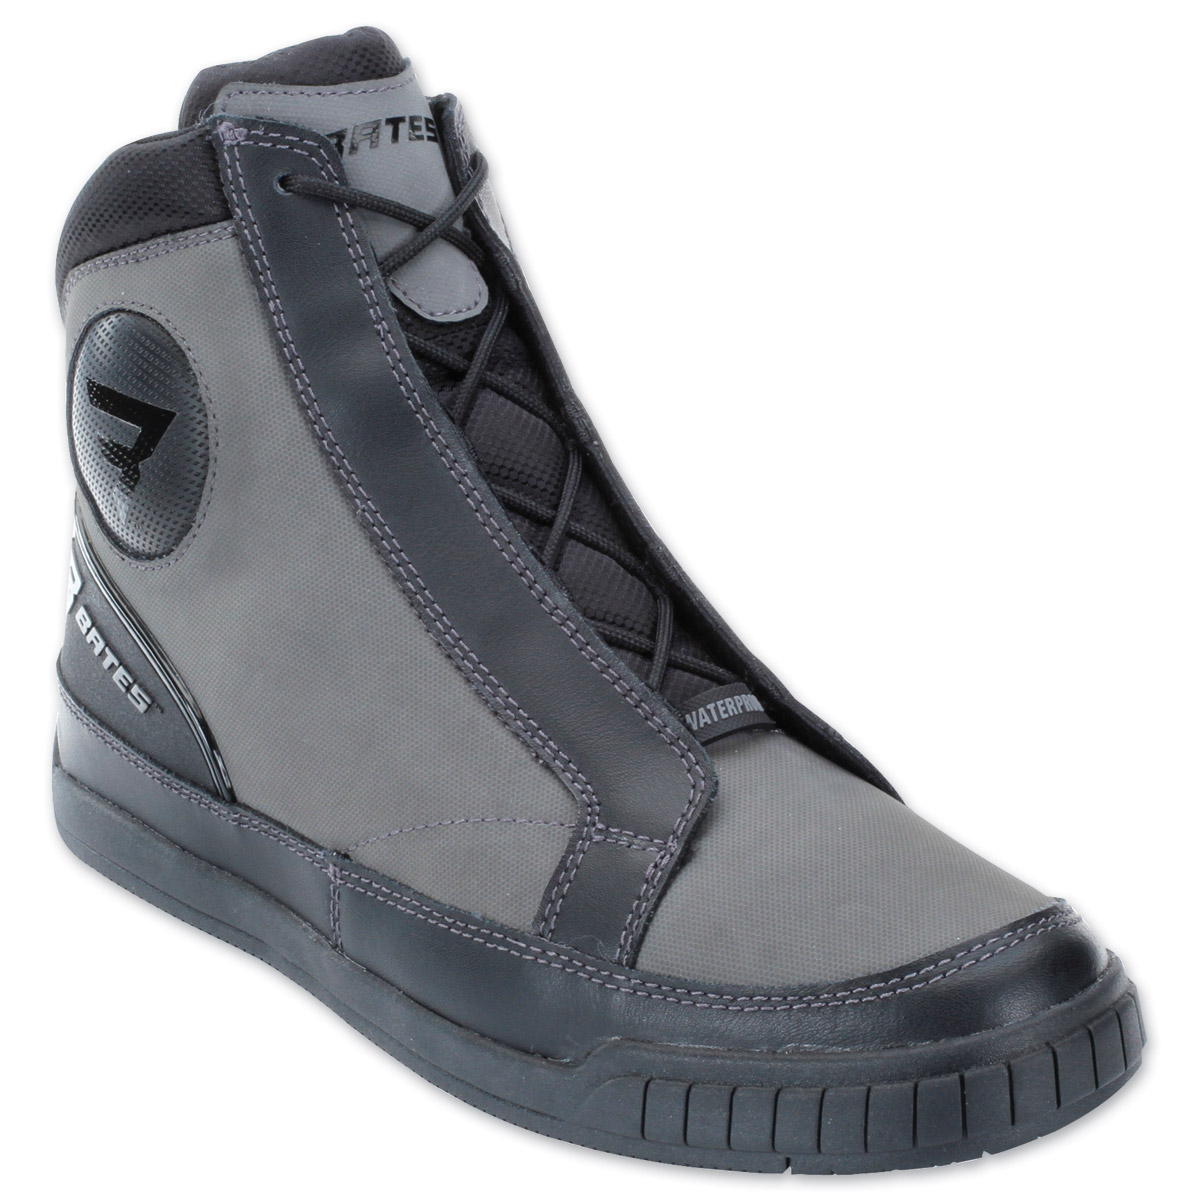 Bates Men's Taser Grey/Black Leather Boots